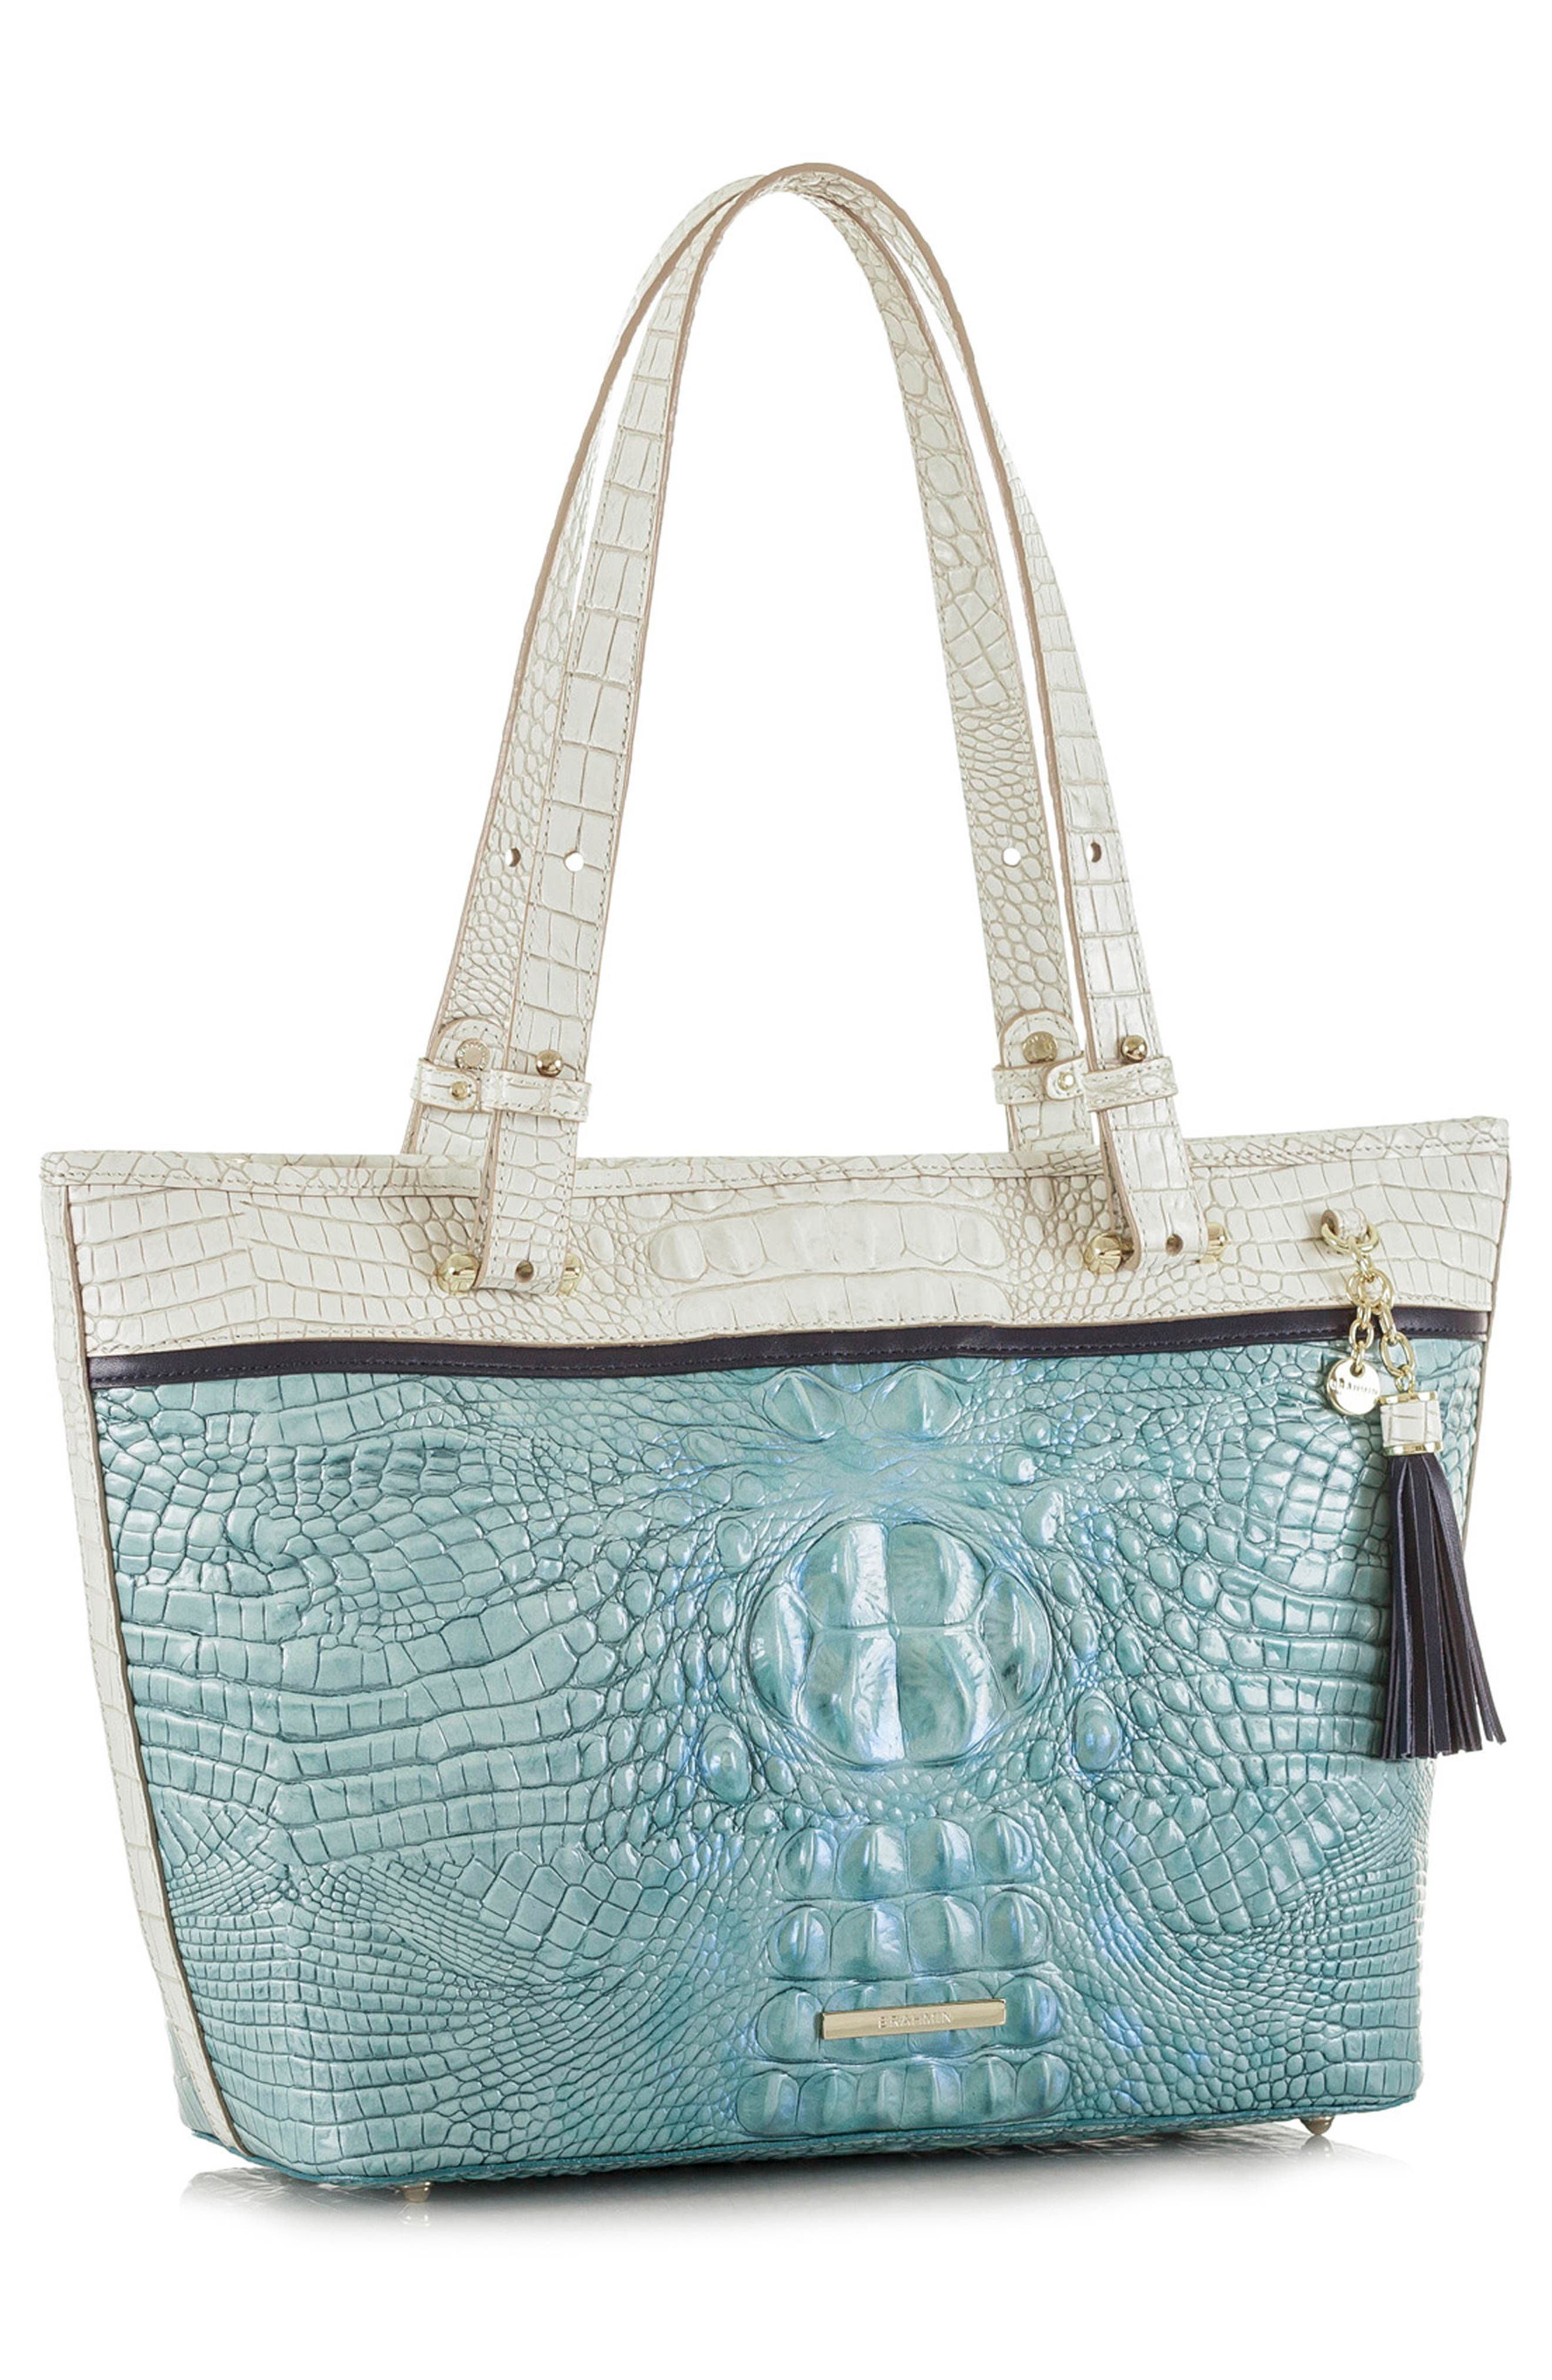 Medium Asher Embossed Leather Tote,                             Alternate thumbnail 4, color,                             Astral